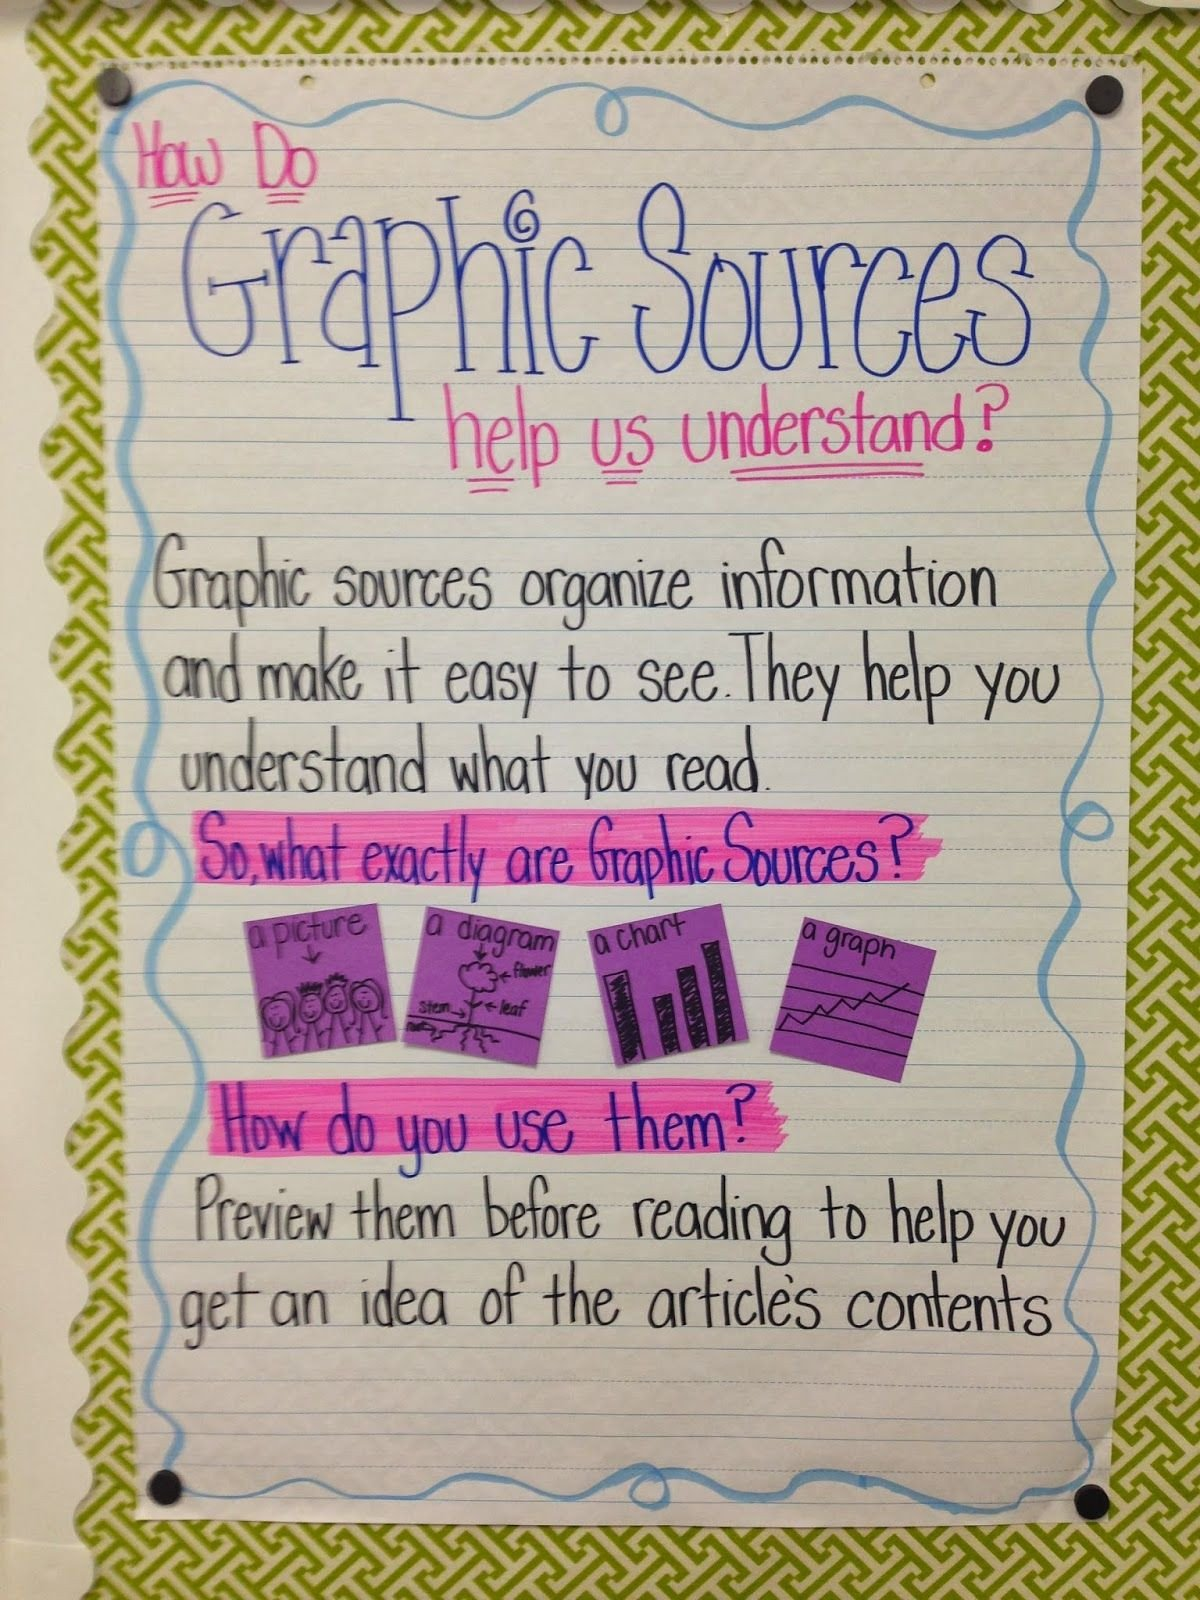 20 Graphic Sources Worksheets